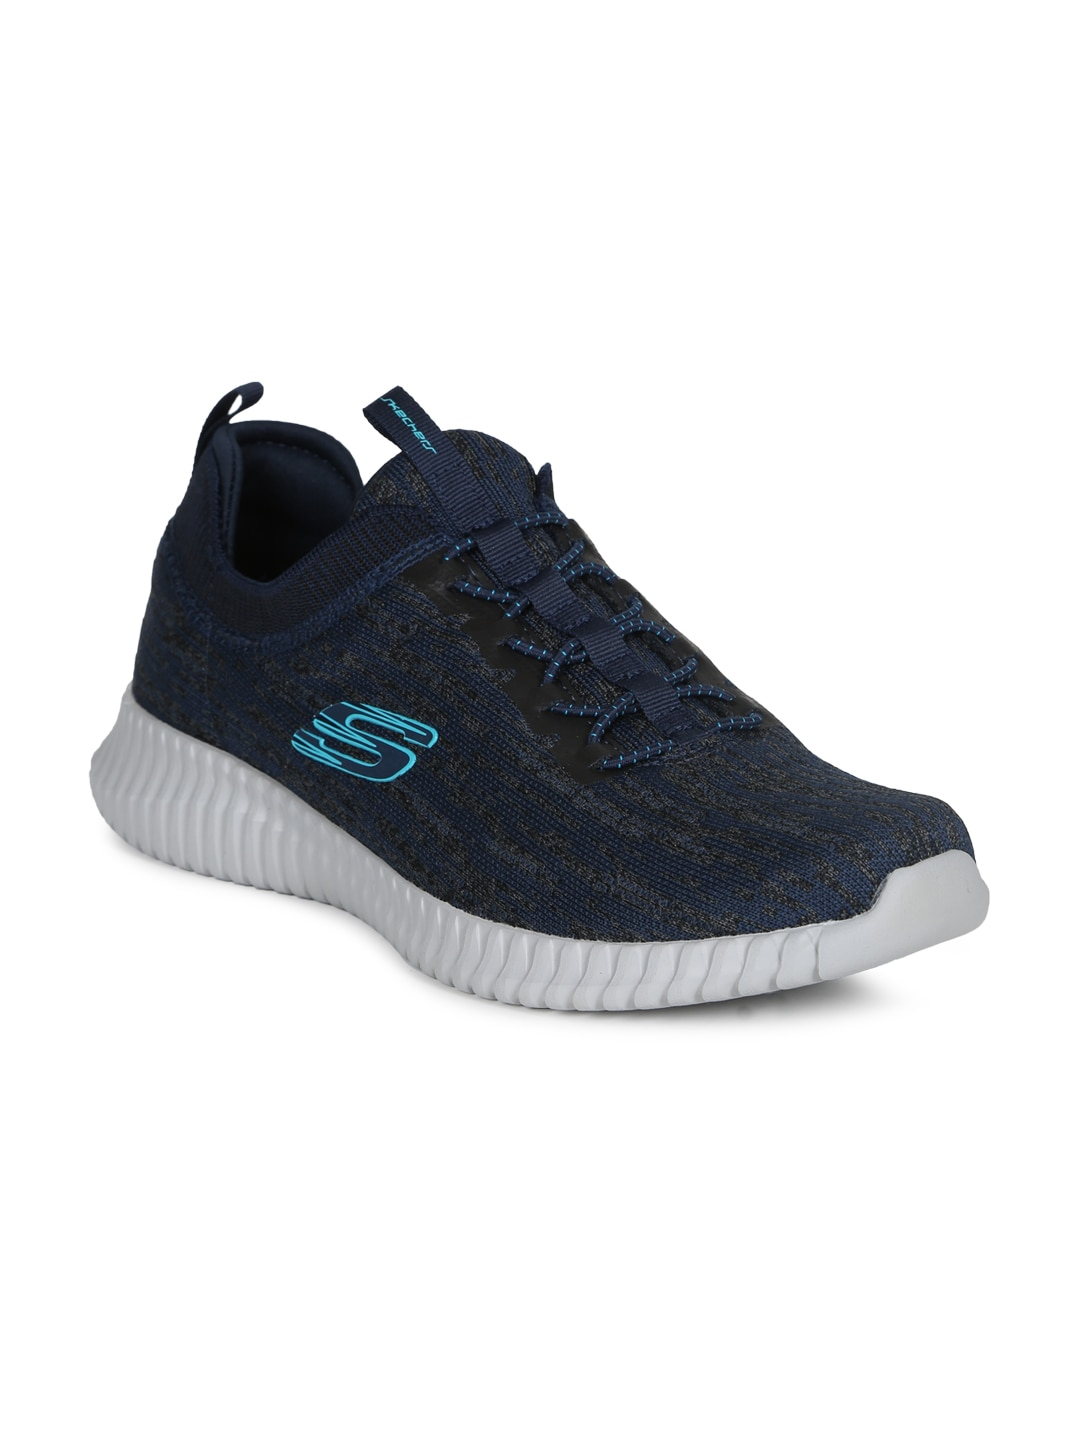 6160f9f93ccd Skechers - Buy Skechers Footwear Online at Best Prices